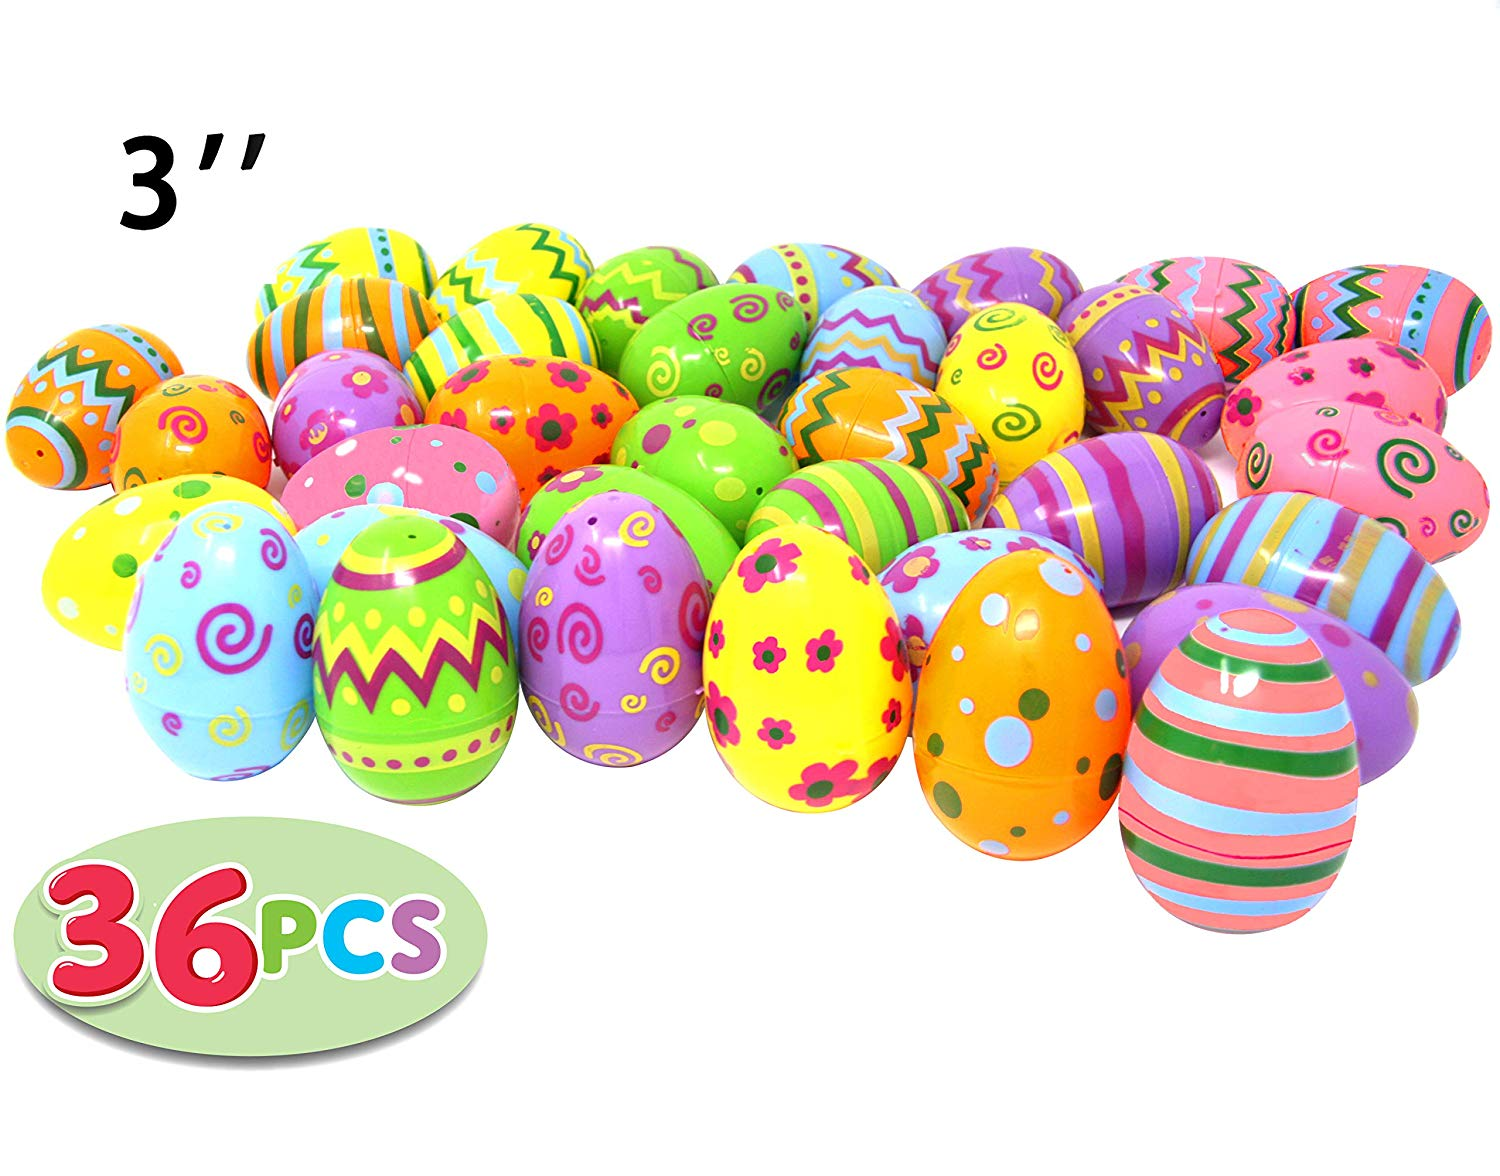 Jumbo Plastic Printed Easter Eggs - click to order